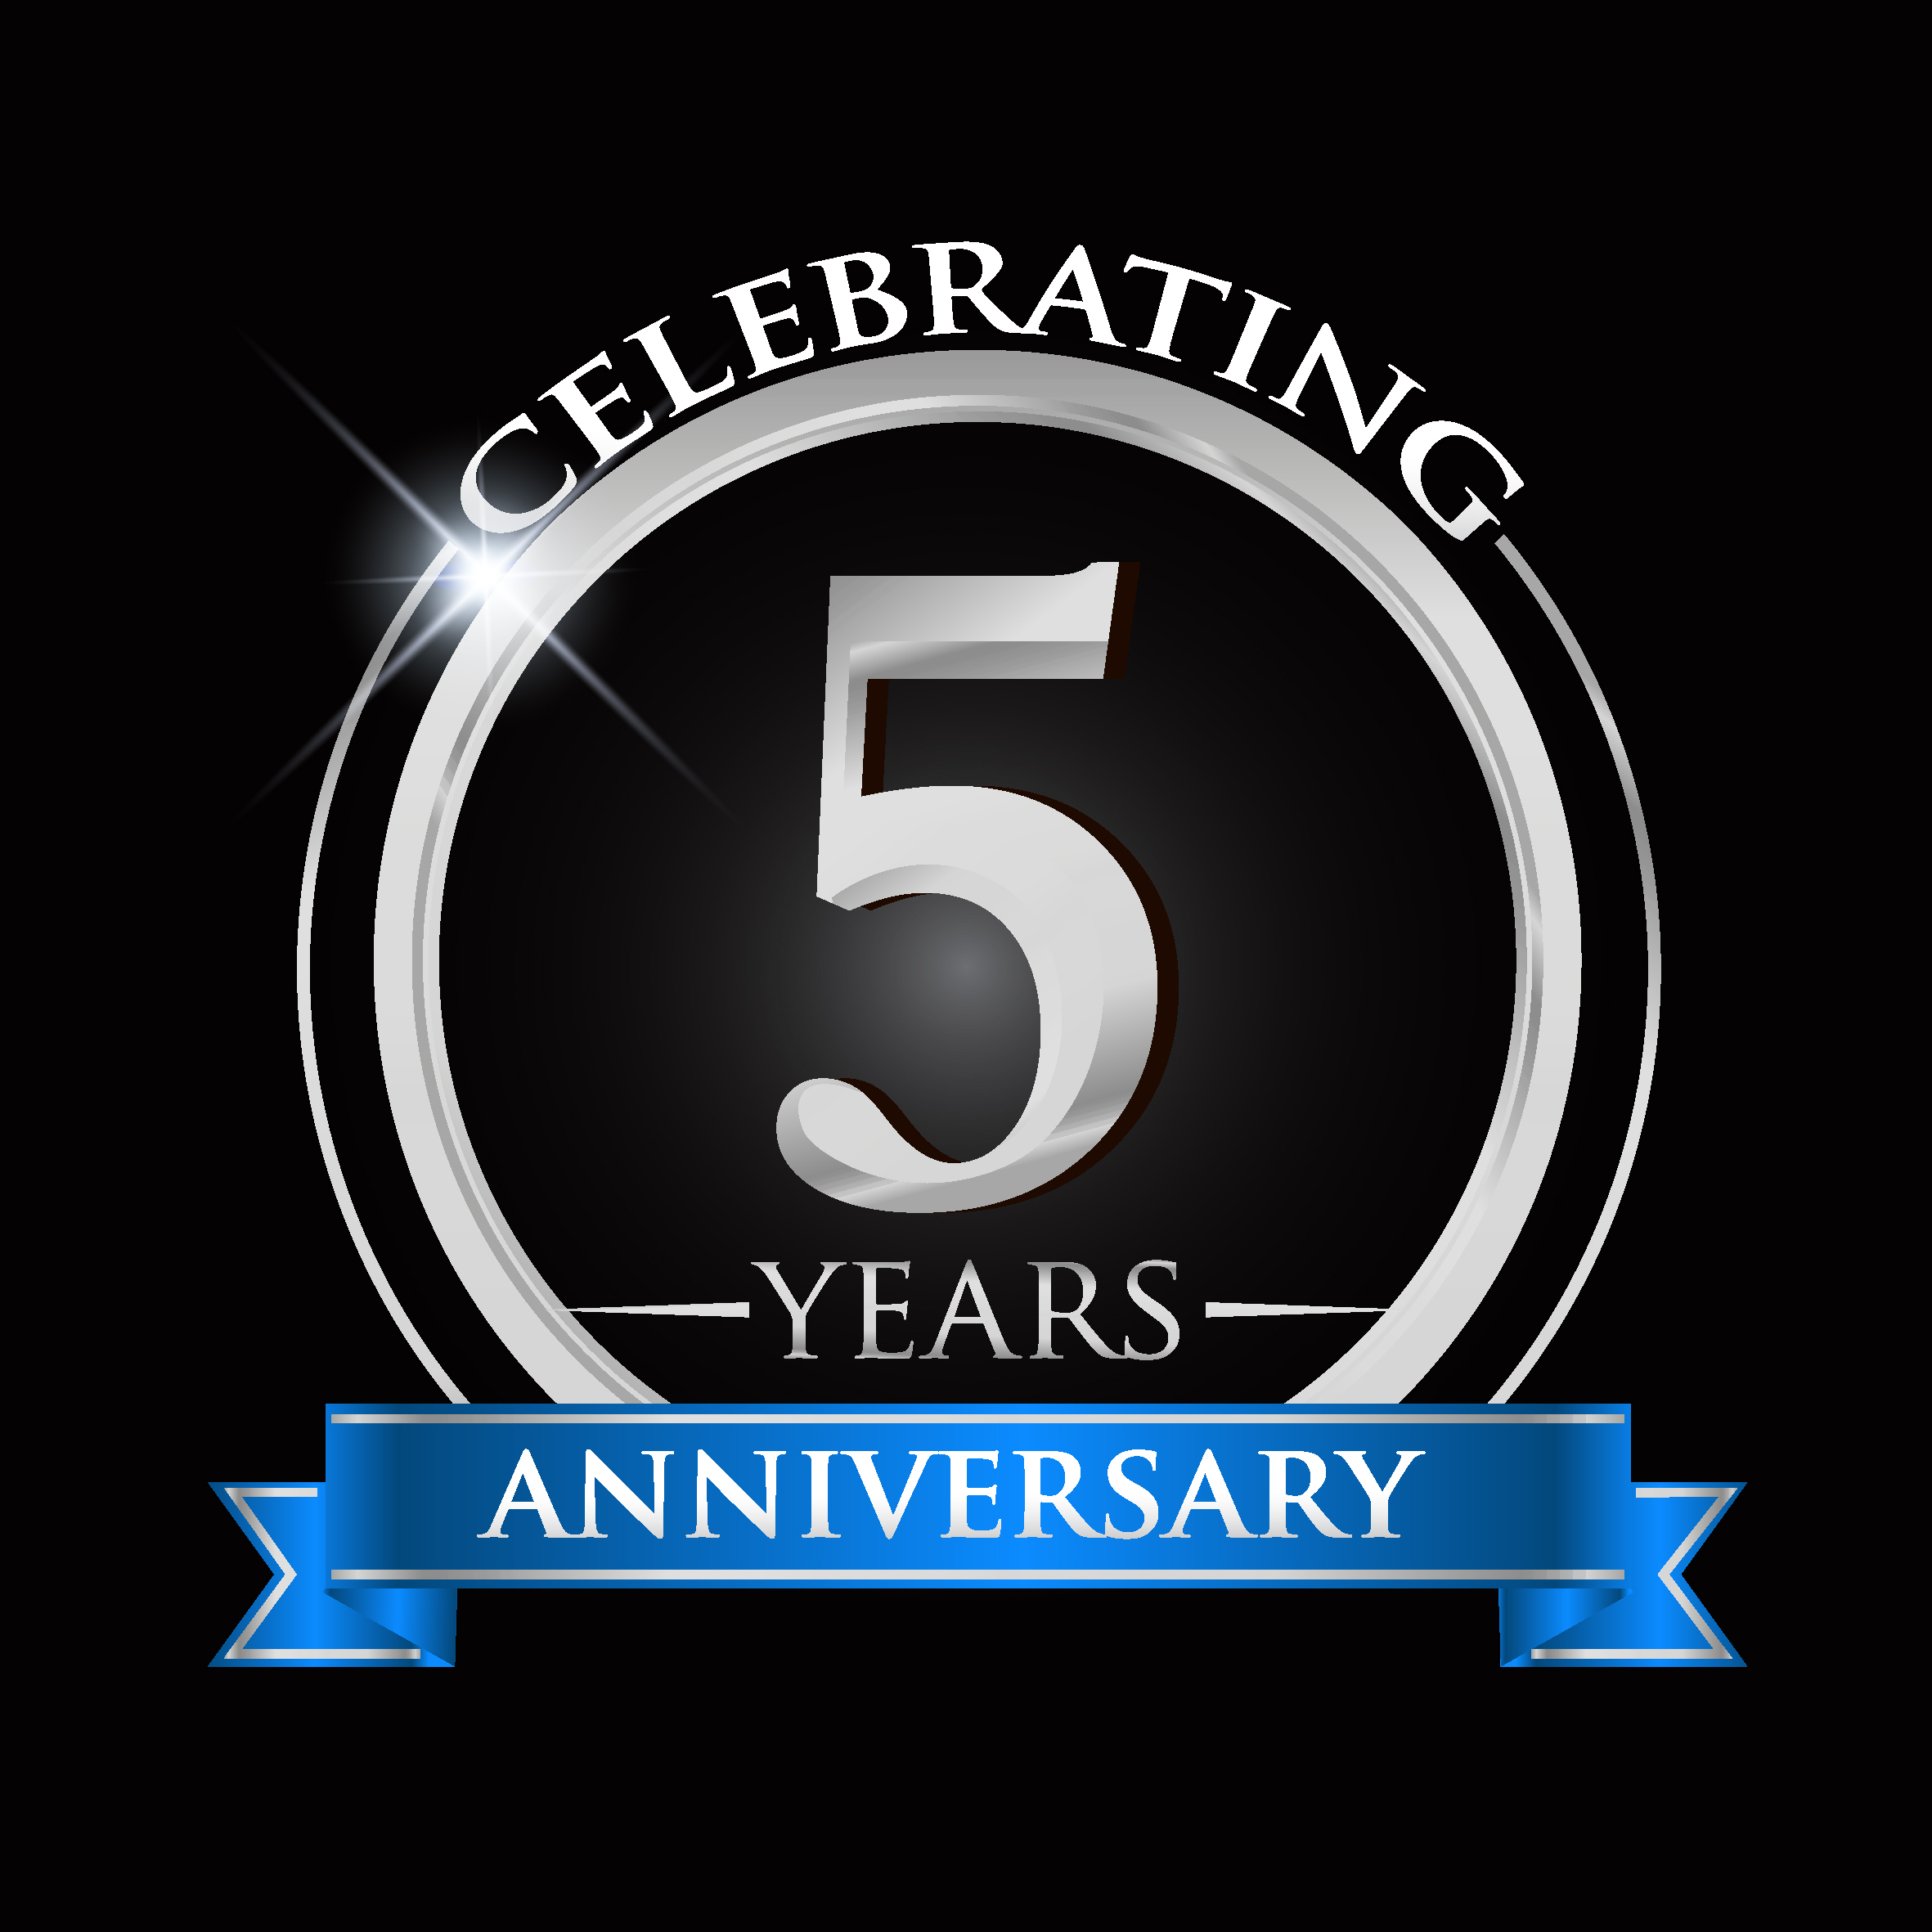 Celebrating 5 years of business contract resolve group celebrating 5 years biocorpaavc Choice Image